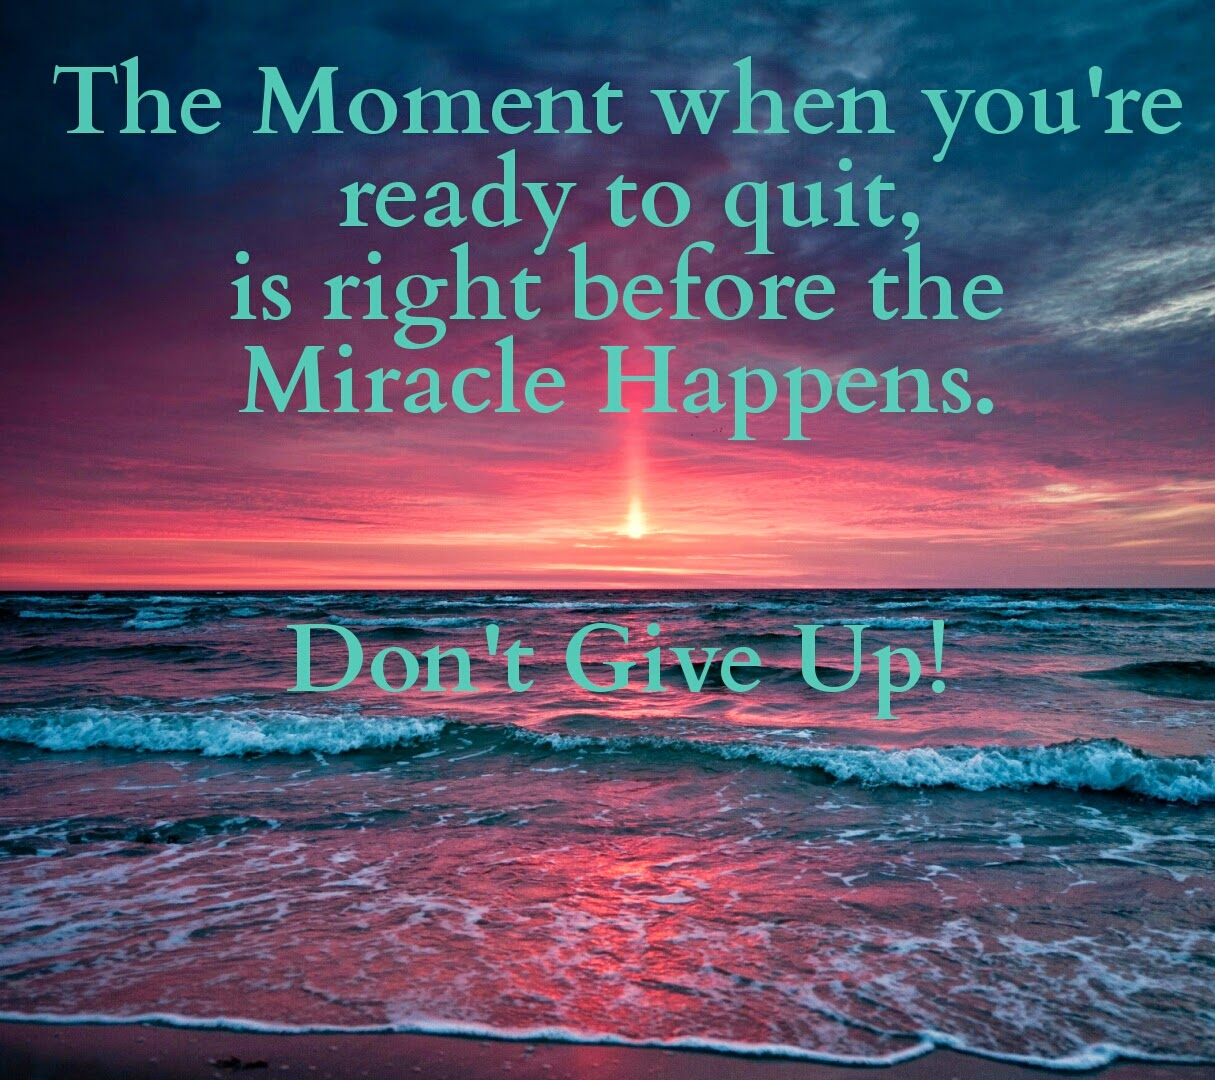 If We Expect A Miracle To Happen Then Maybe It Will More Often May Your Day Be Filled With Miracles And Expecting Thankful For Countless